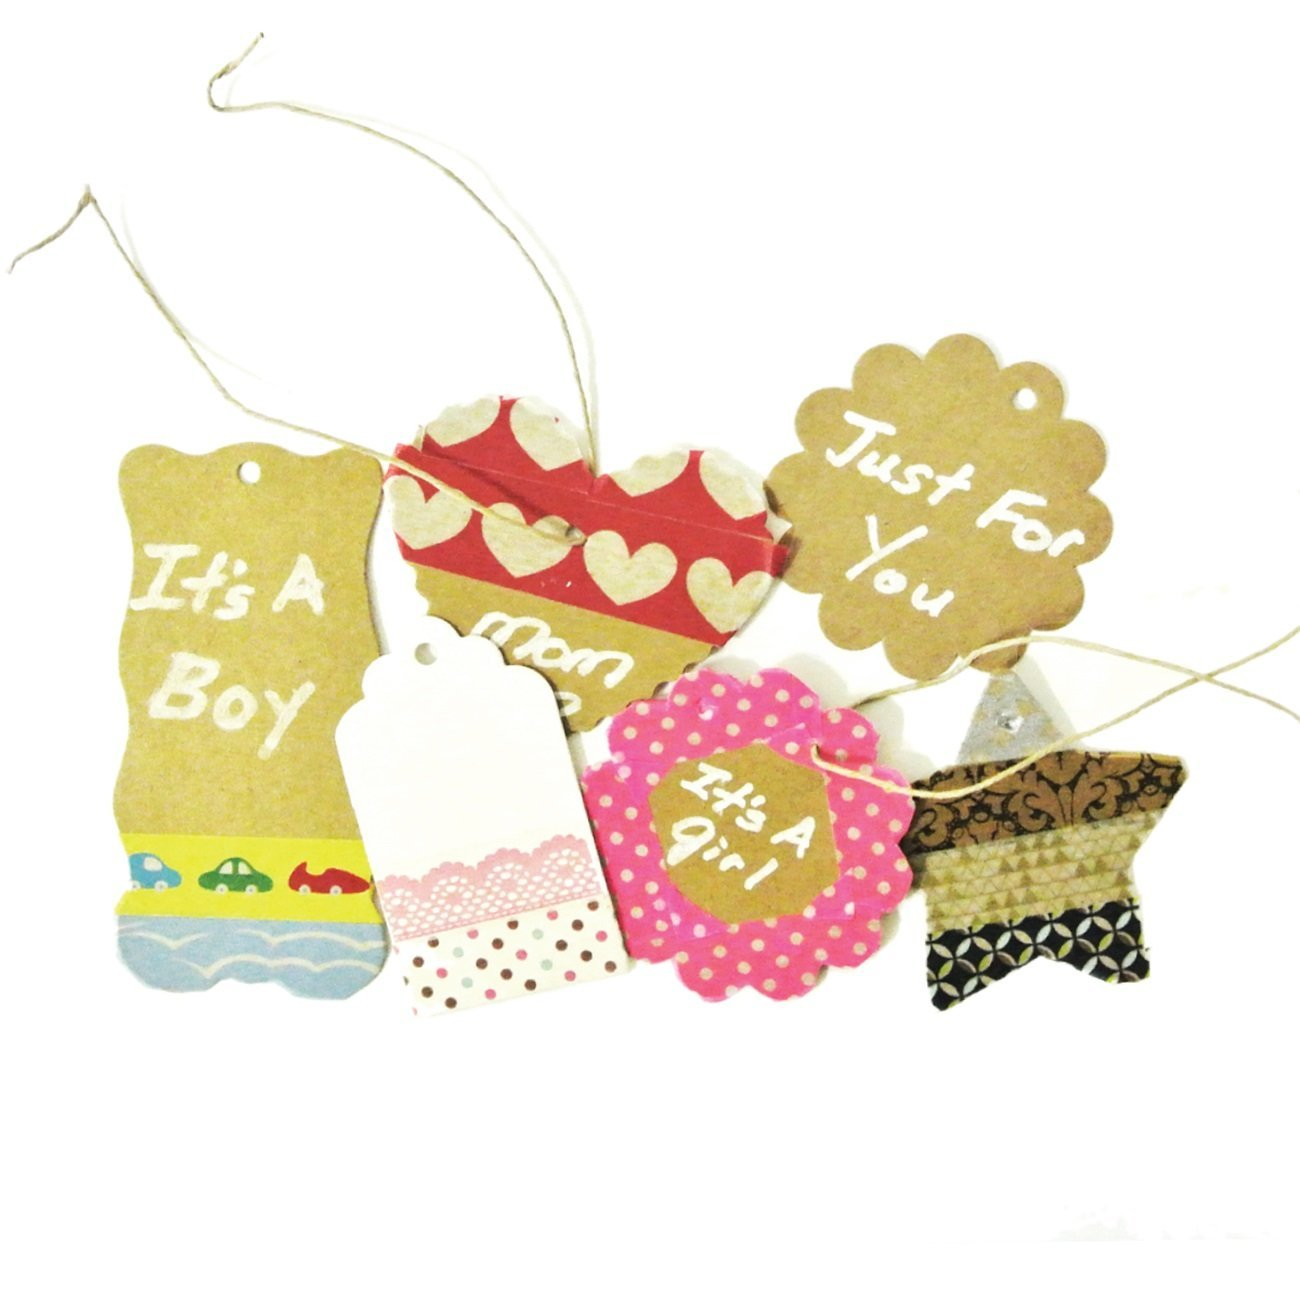 Wrapables 50 Gift Tags/Kraft Hang Tags with Free Cut Strings for Gifts, Crafts & Price Tags, Large Scalloped Edge